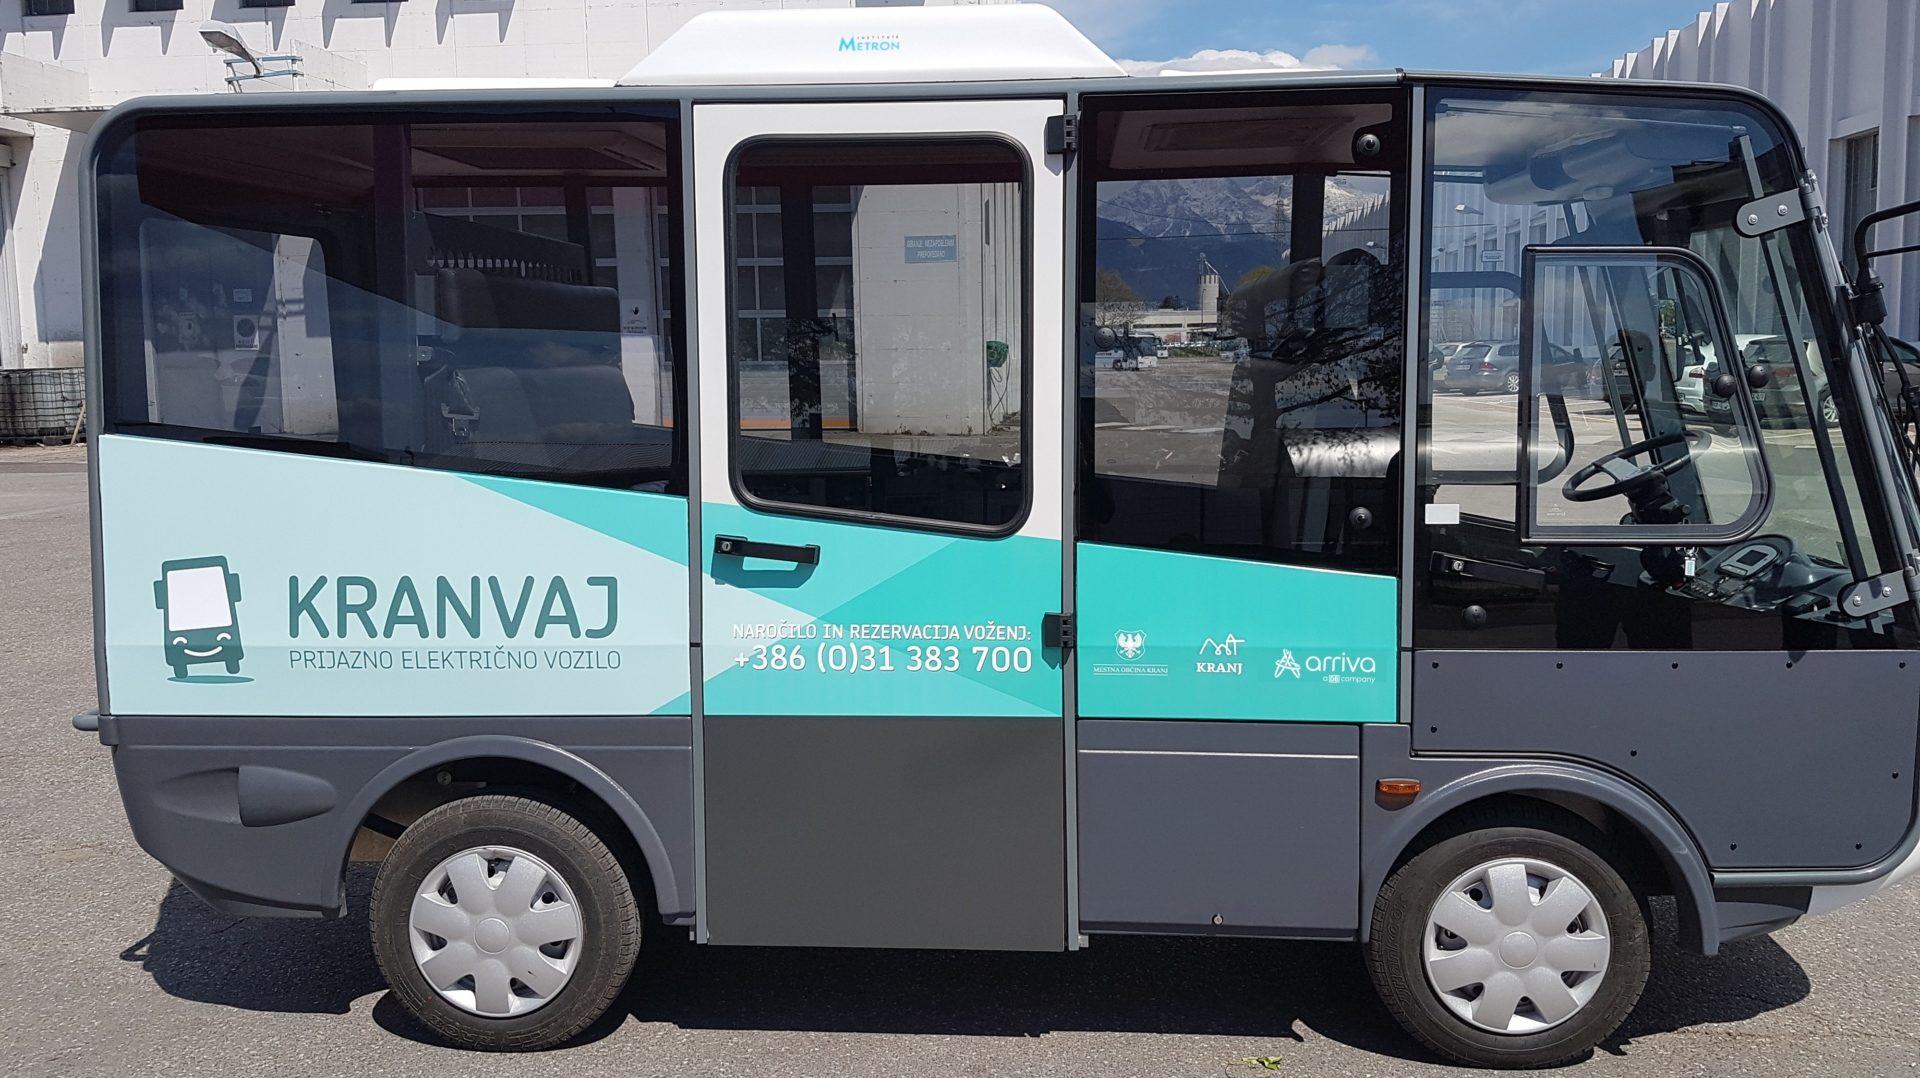 A free dial-a-ride transit service is intended for all citizens and other passengers, particularly the elderly users, the disabled and users with other motor impairments.